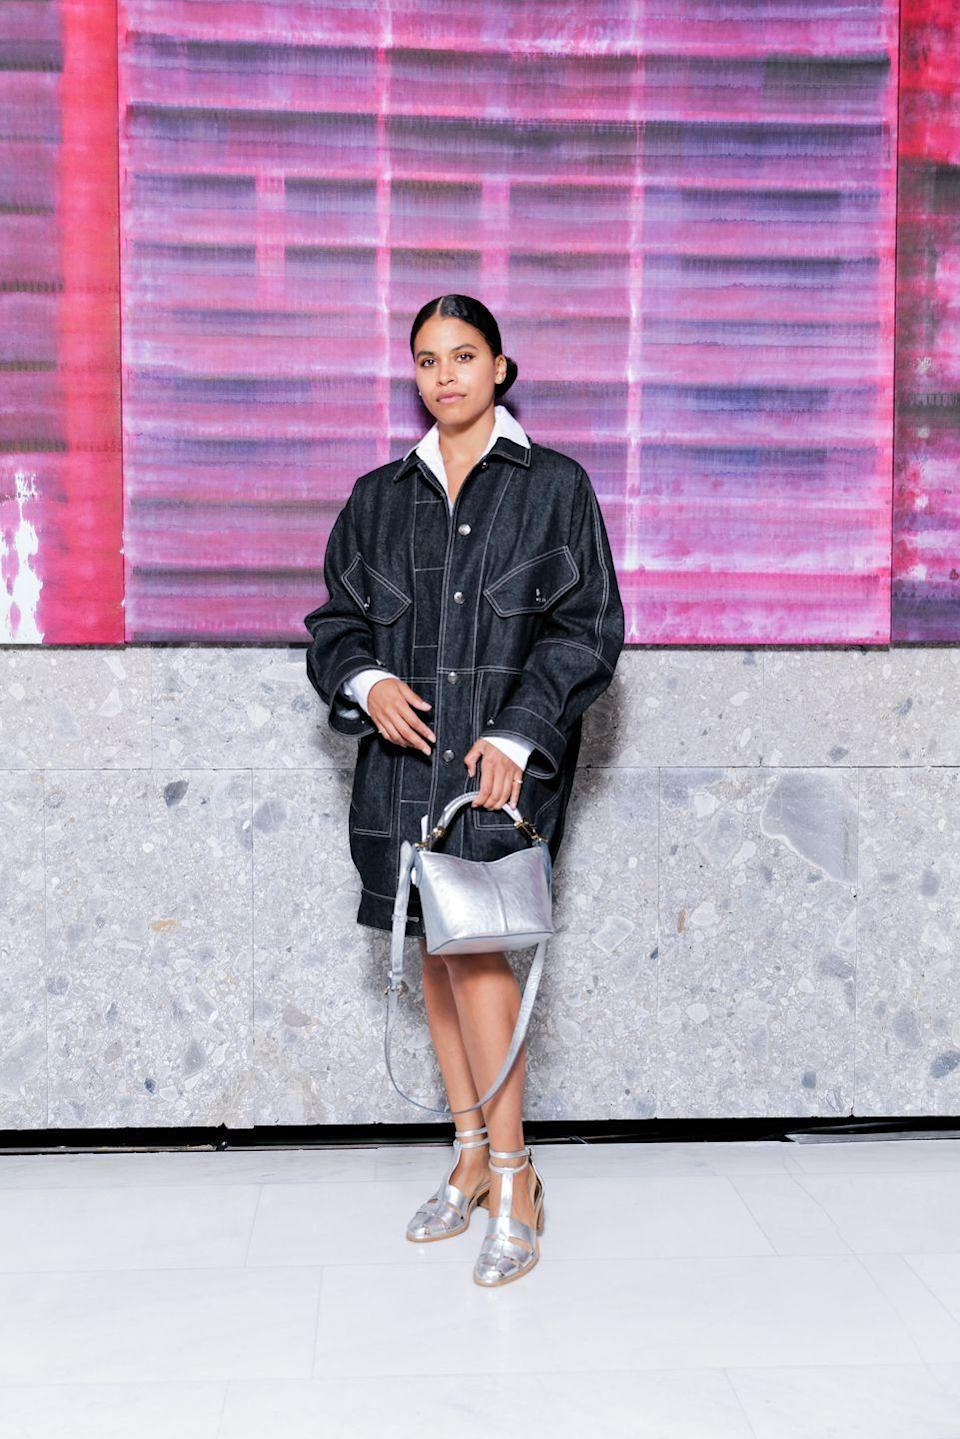 """<p><strong>Who:</strong> Zazie Beetz</p><p><strong>What: </strong>WIF Max Mara Face of the Future Award </p><p><strong>Where: </strong>At Milan Fashion Week</p><p><strong>Why: </strong>Congrats are in order for Zazie Beetz! The New York-based actress and <a href=""""https://www.elle.com/culture/a36098874/zazie-beetz-atlanta-the-harder-they-fall/"""" rel=""""nofollow noopener"""" target=""""_blank"""" data-ylk=""""slk:ELLE cover girl"""" class=""""link rapid-noclick-resp""""><em>ELLE</em> cover girl</a> is the recipient of the 2021 WIF Max Mara Face of the Future Award®. To properly celebrate, she was invited by the Maramotti family to Max Mara's spring/summer 2022 show in Milan. The award is given out annually to an actress who """"is experiencing a turning point in her career,"""" whether it be through acting, community-based initiatives, overall personification of star quality, grace, and style, or all of the above. Past recipients of the award include Katie Holmes, Kate Mara, and Emily Blunt. Beetz has been on the rise for the last couple of years, starring in the critically acclaimed TV show <em>Atlanta</em>, and will next appear in Netflix's all-Black western <em>The Harder They Fall</em> alongside Regina King and Idris Elba.<br></p>"""